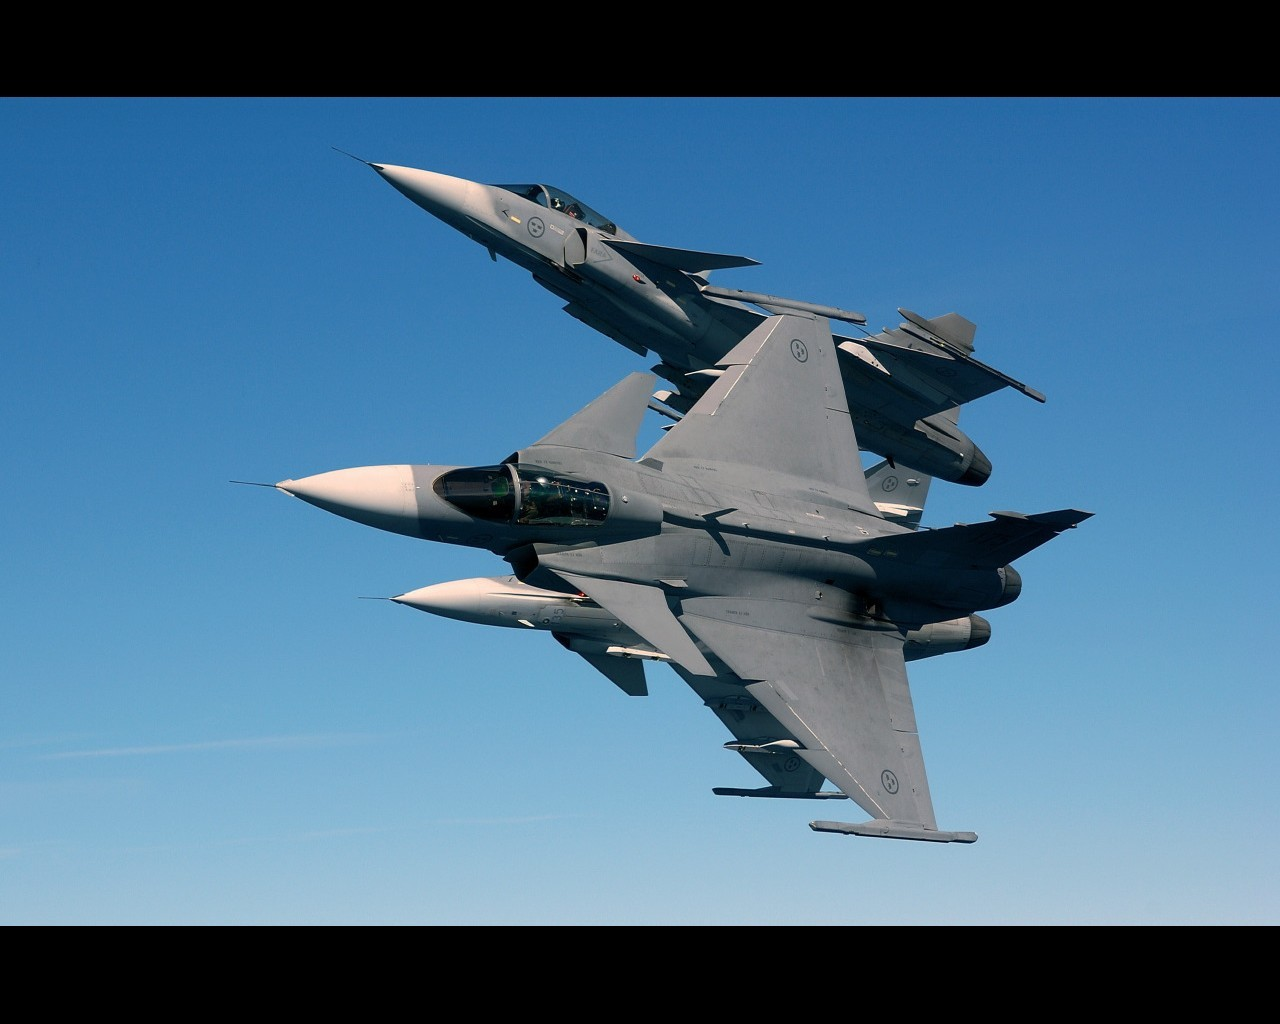 Aircraft Jas 39 Gripen HD Wallpaper